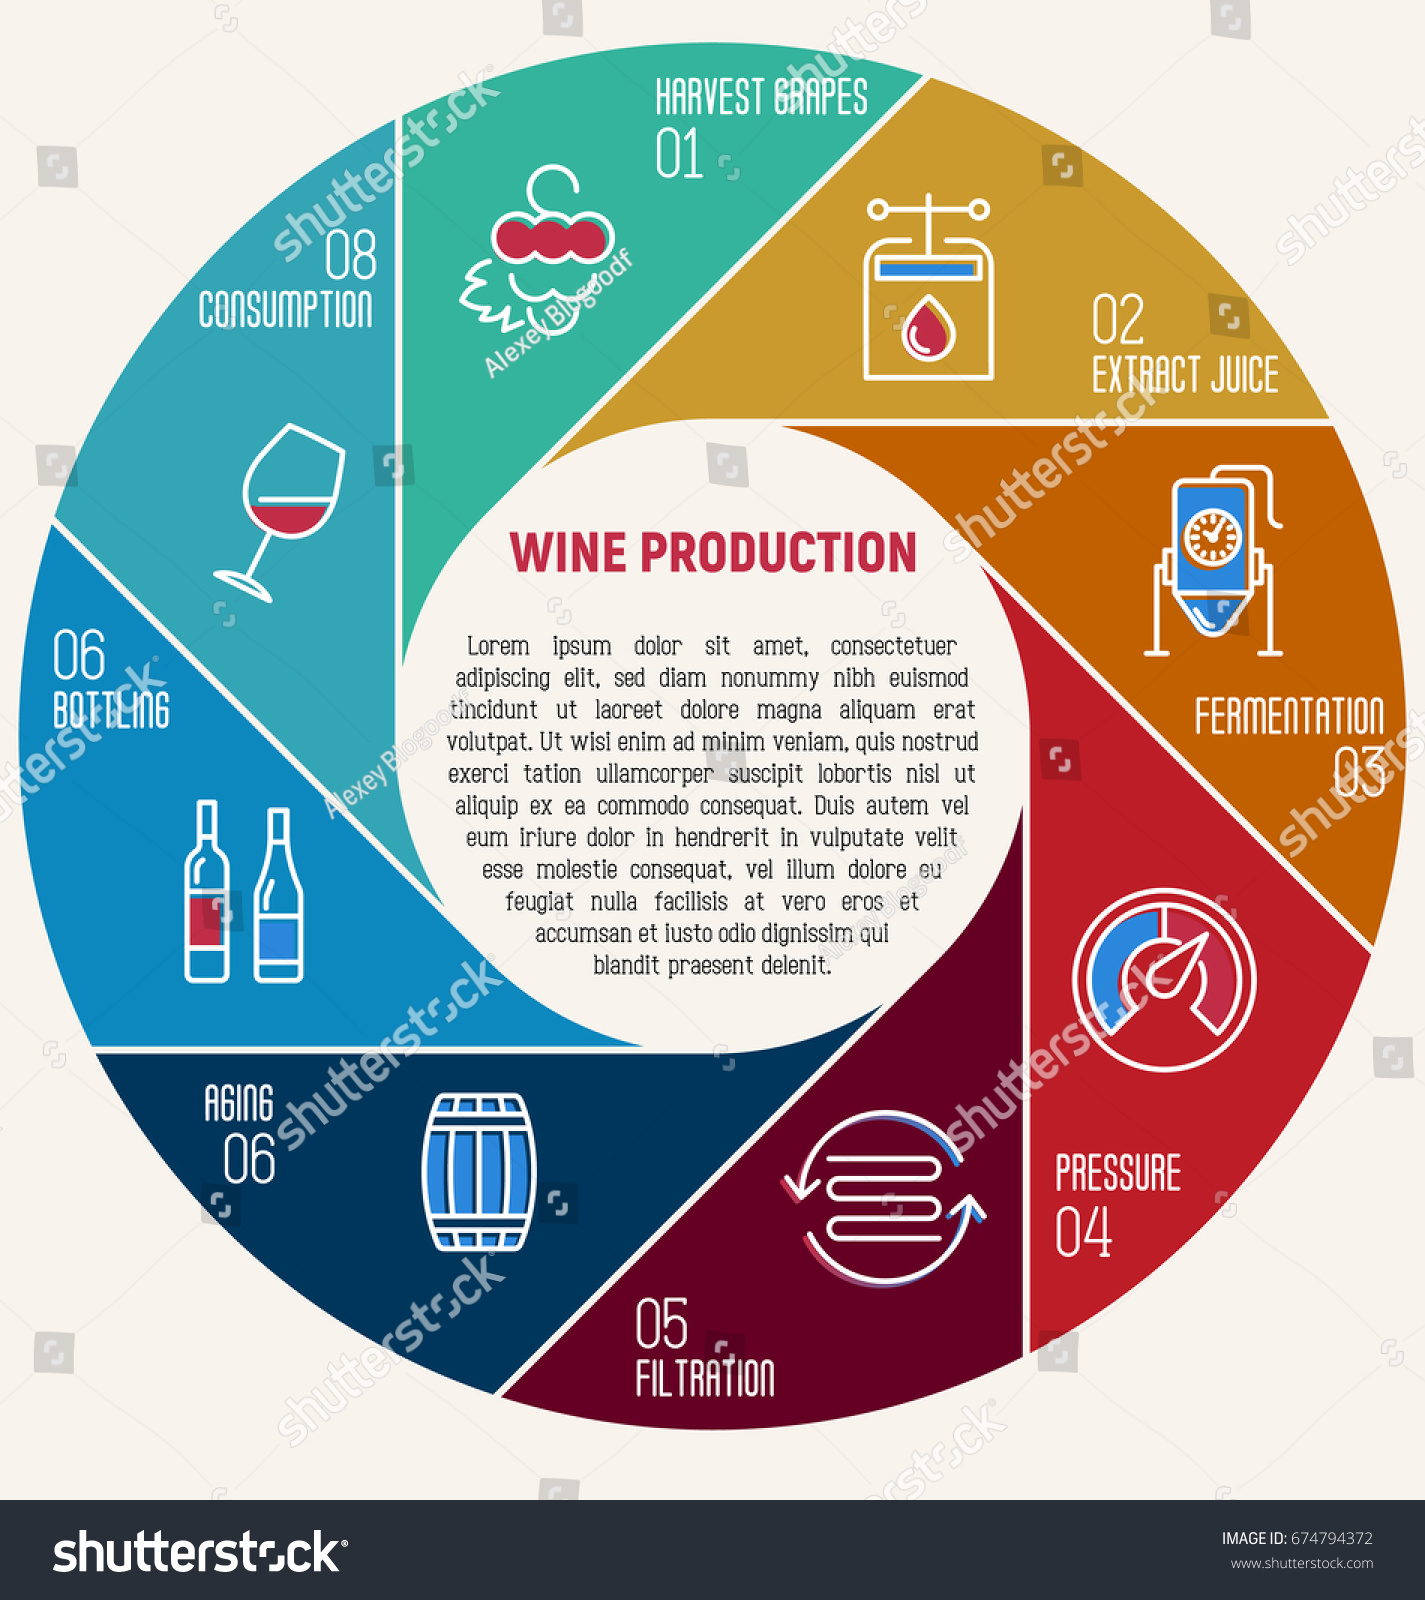 Thin Line Infographic Wine Fermentation Circle Stock